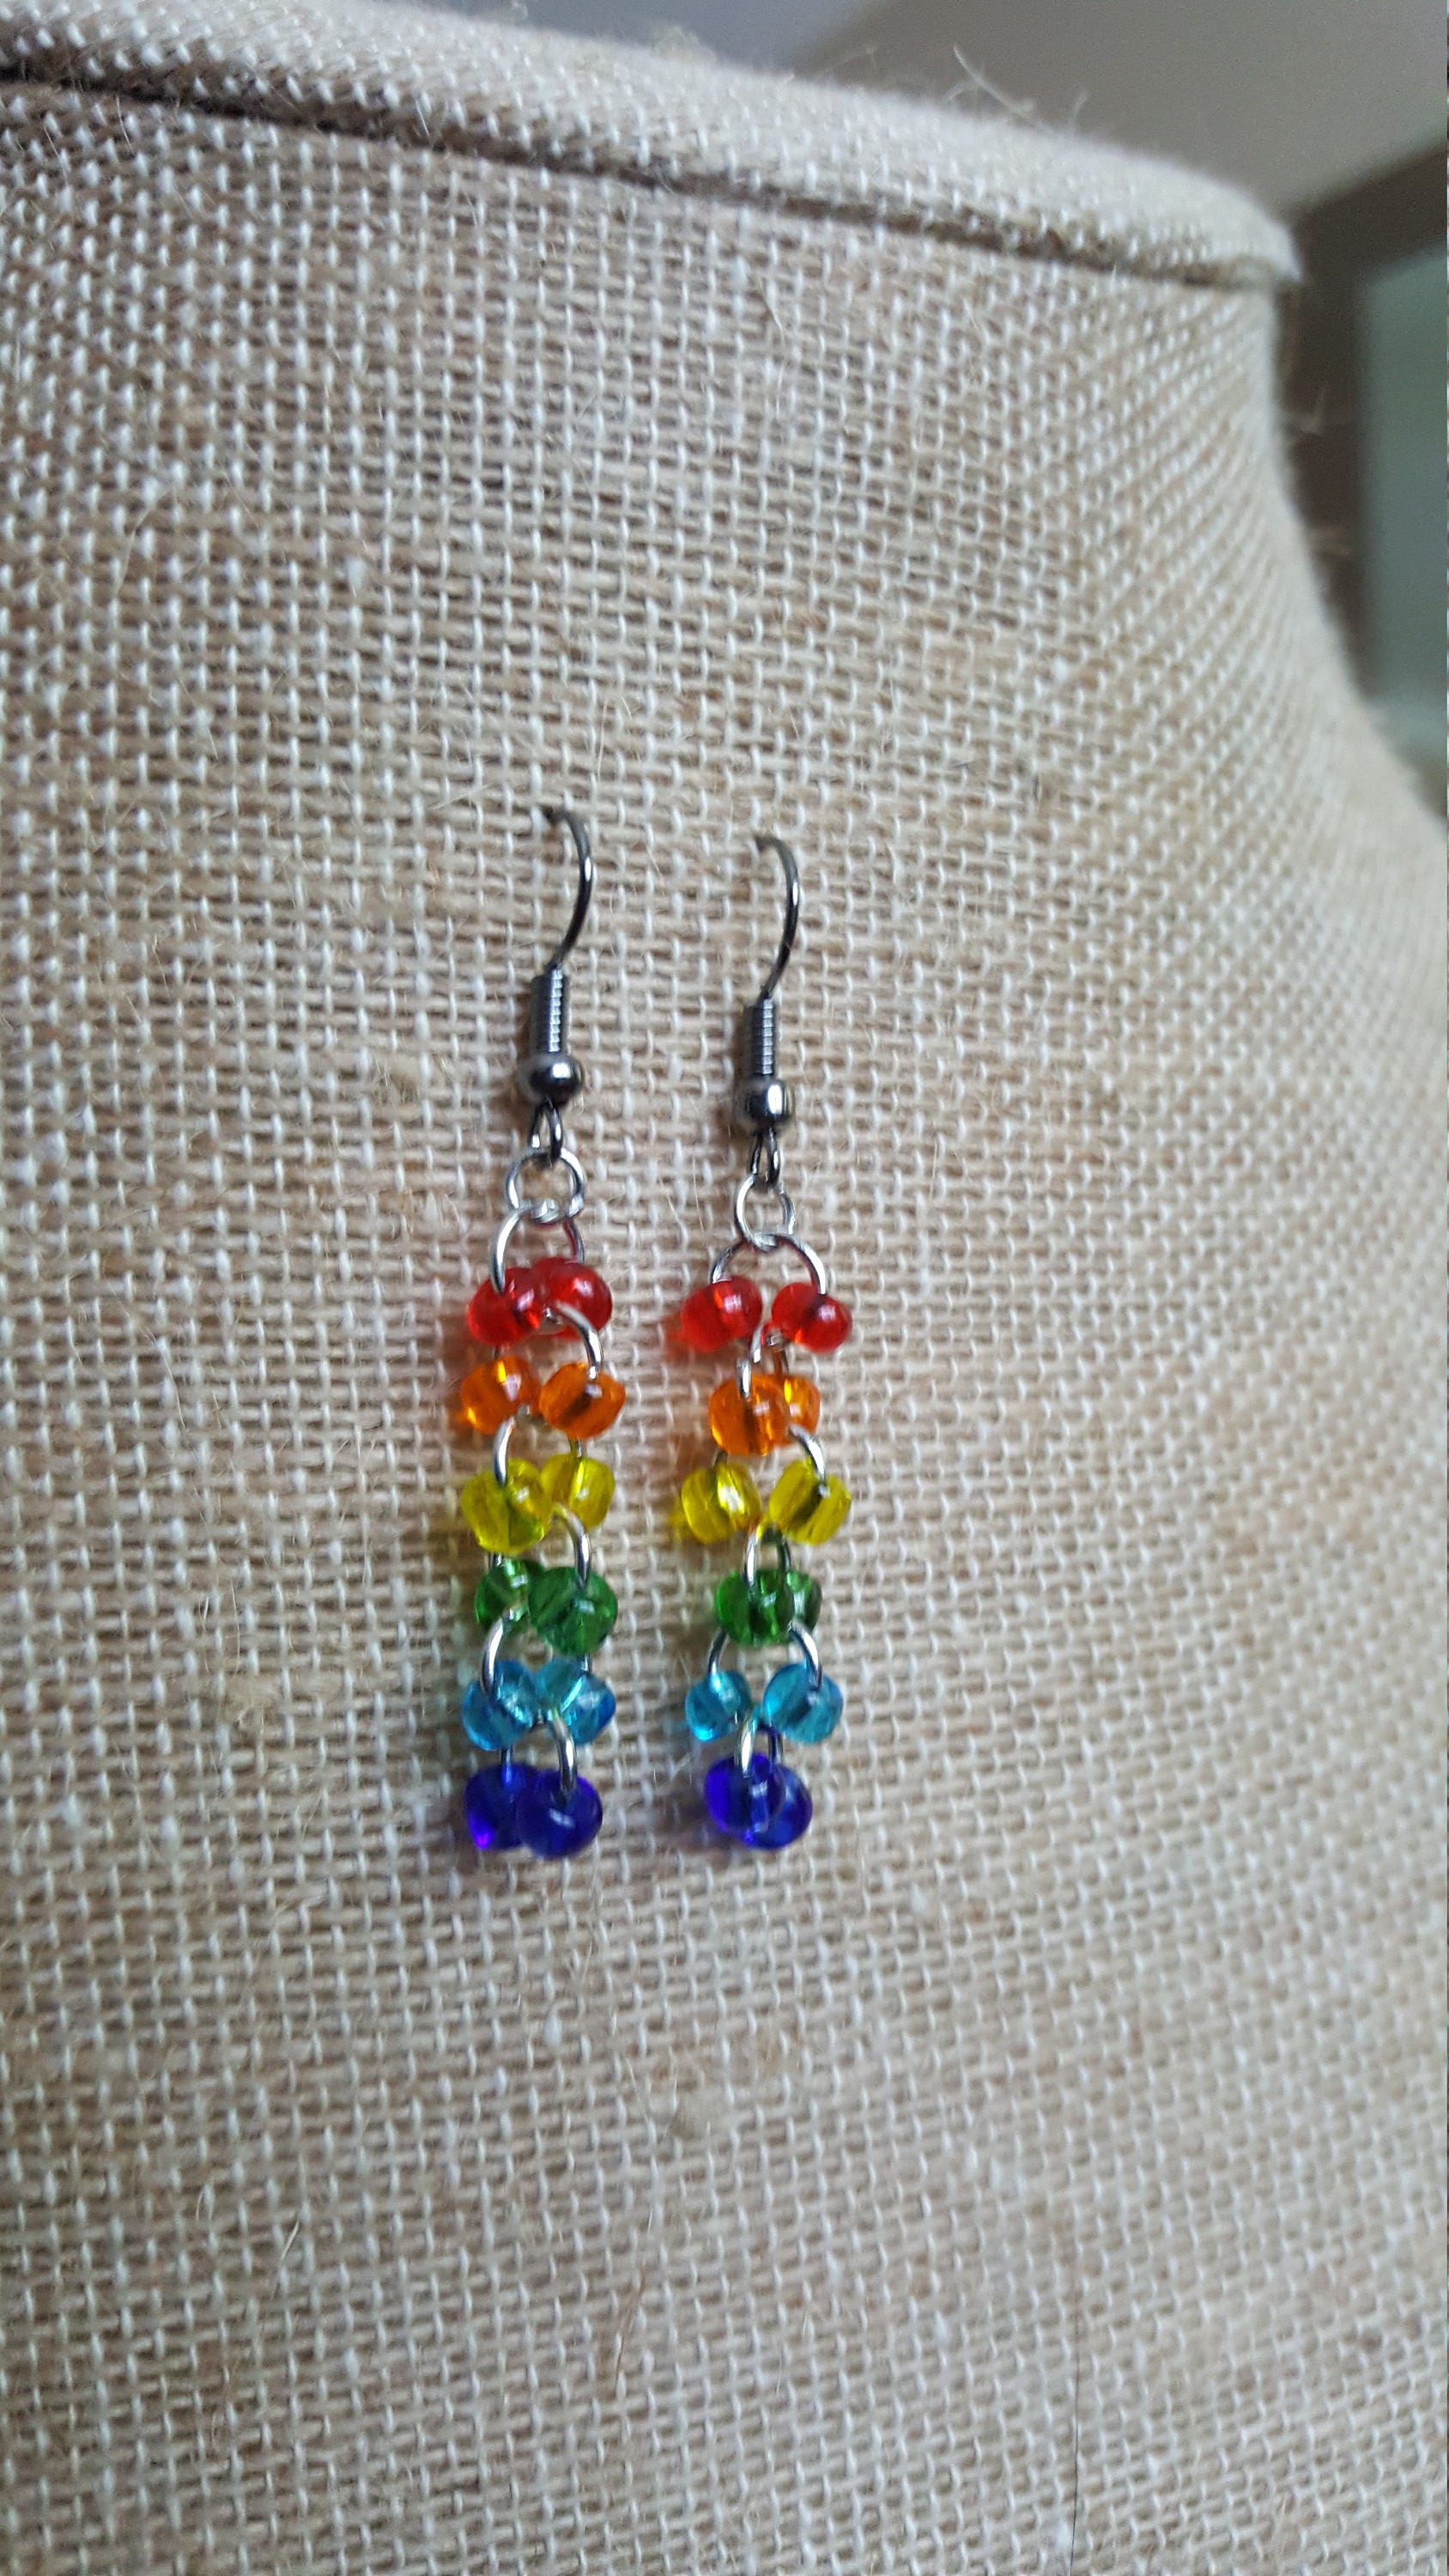 earrings haan stud in a rainbow water bridge cole the under gold glass